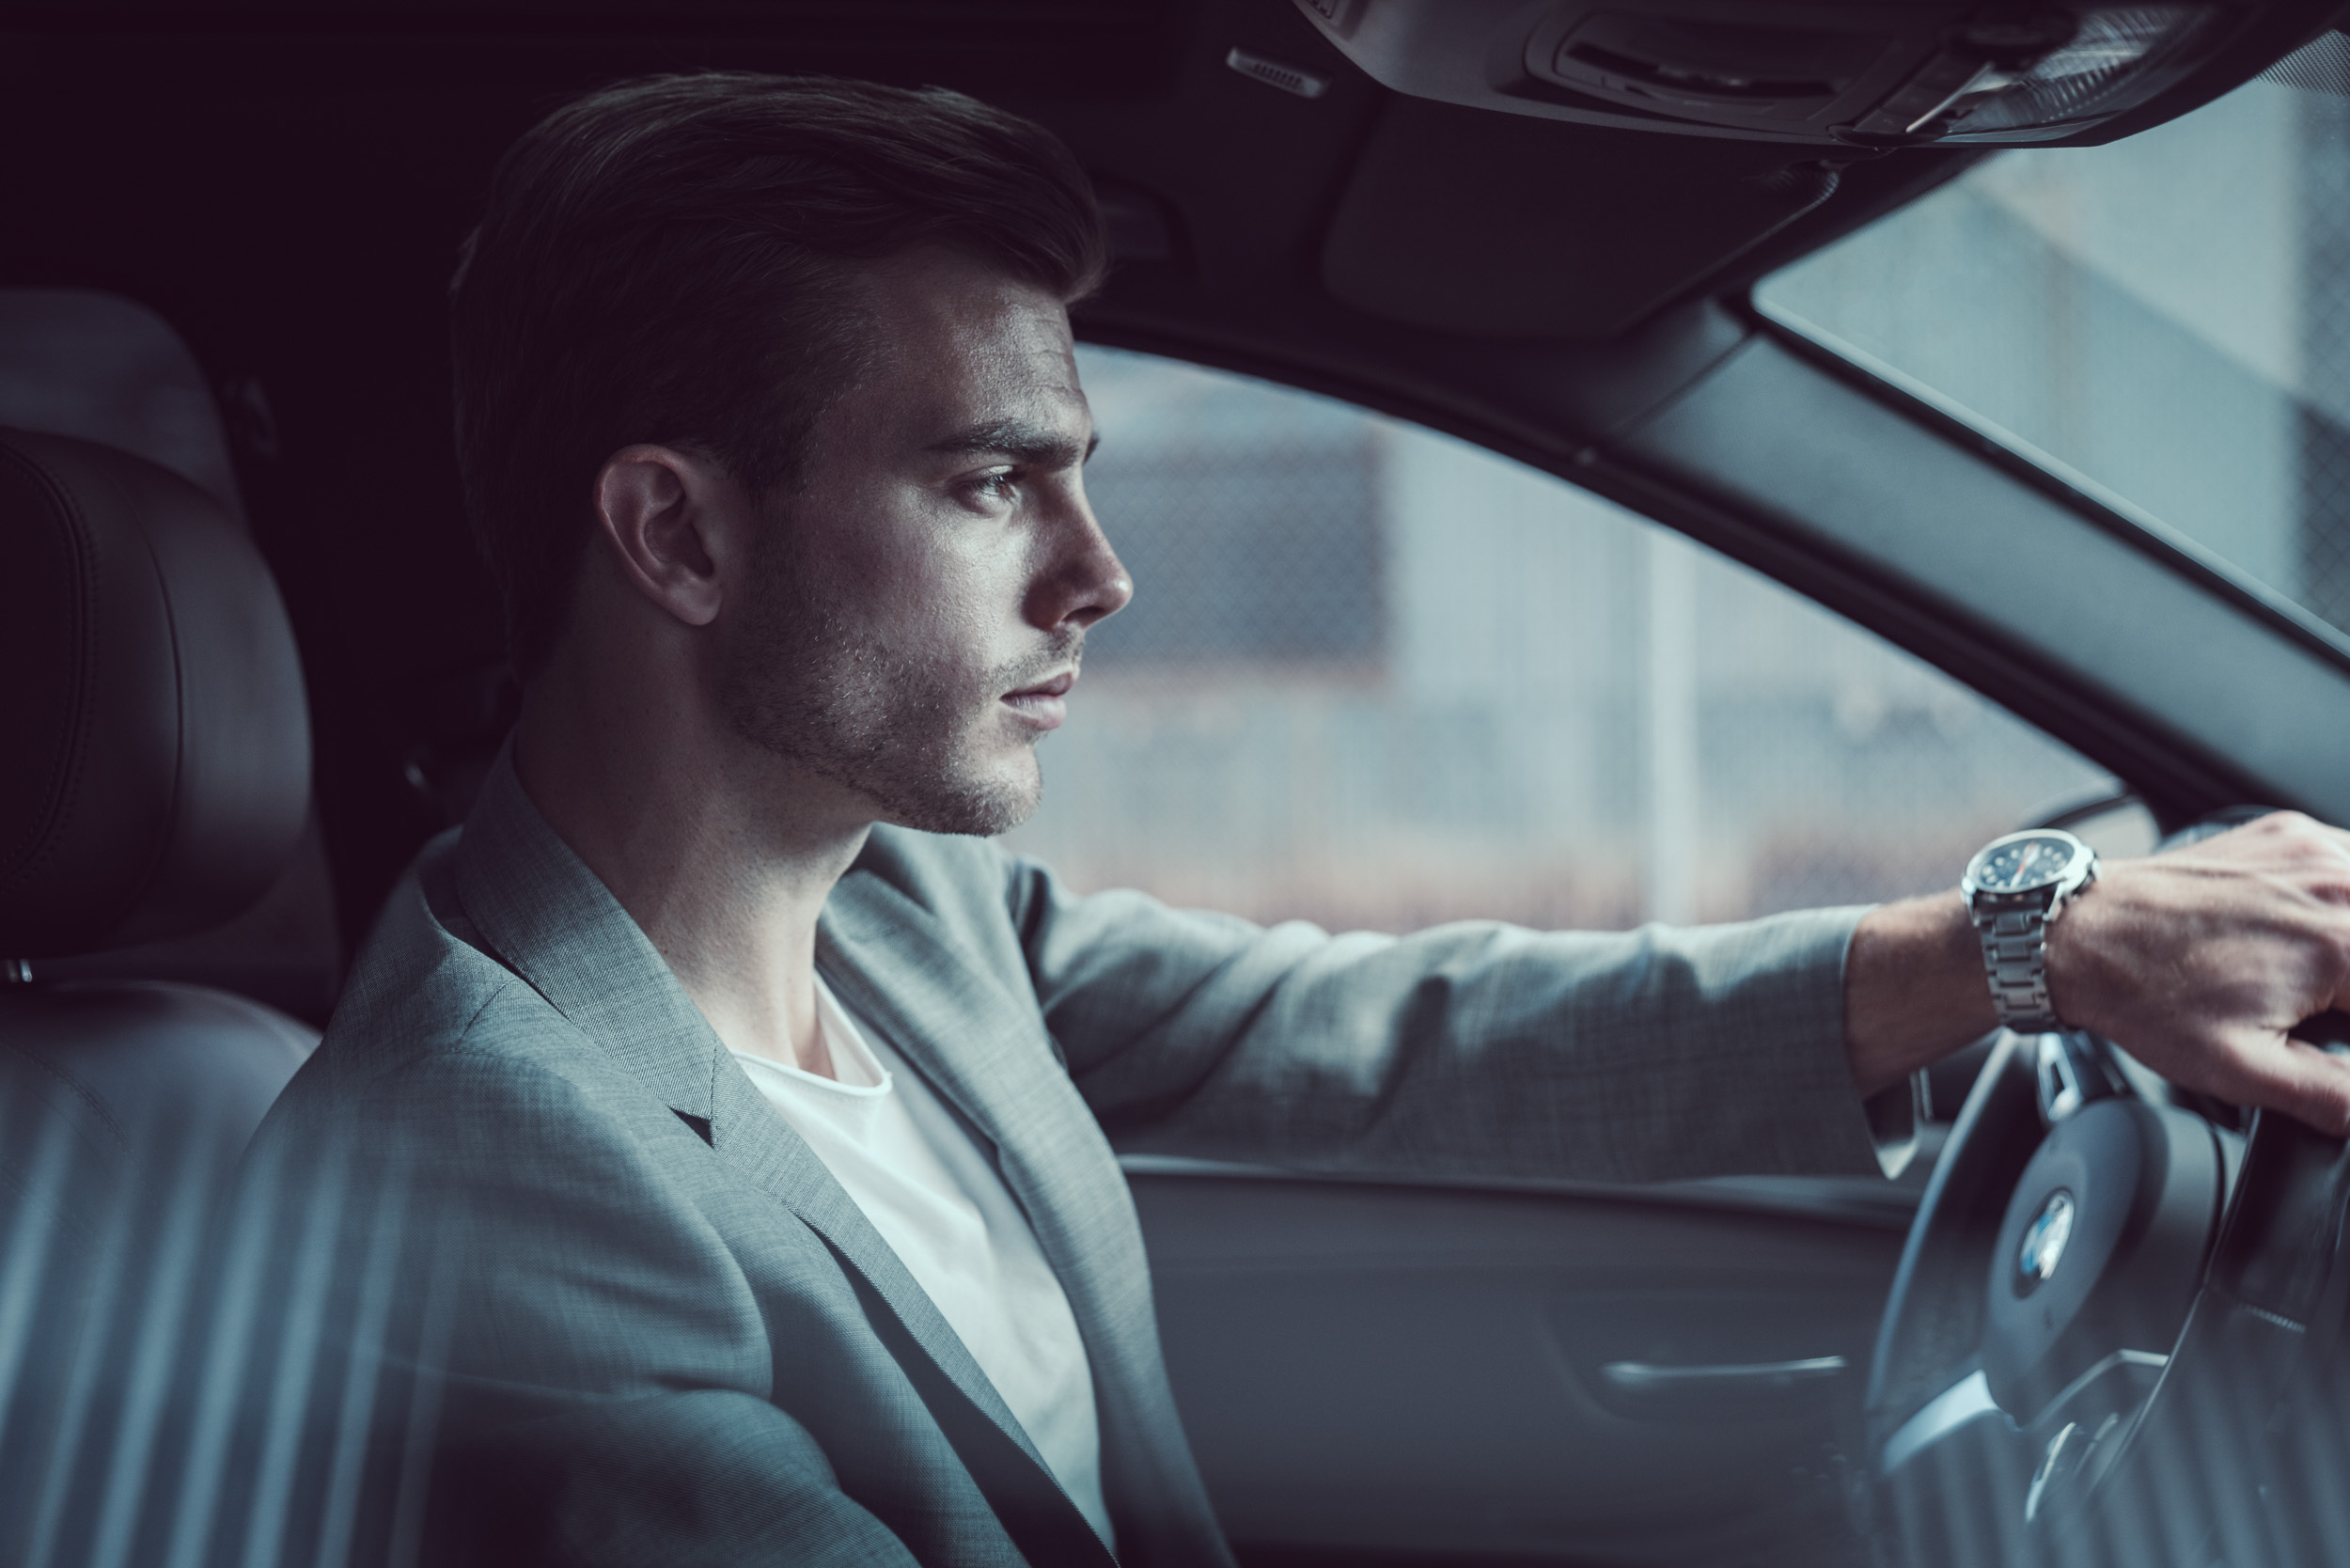 Fashionable male model in grey suit inside BMW